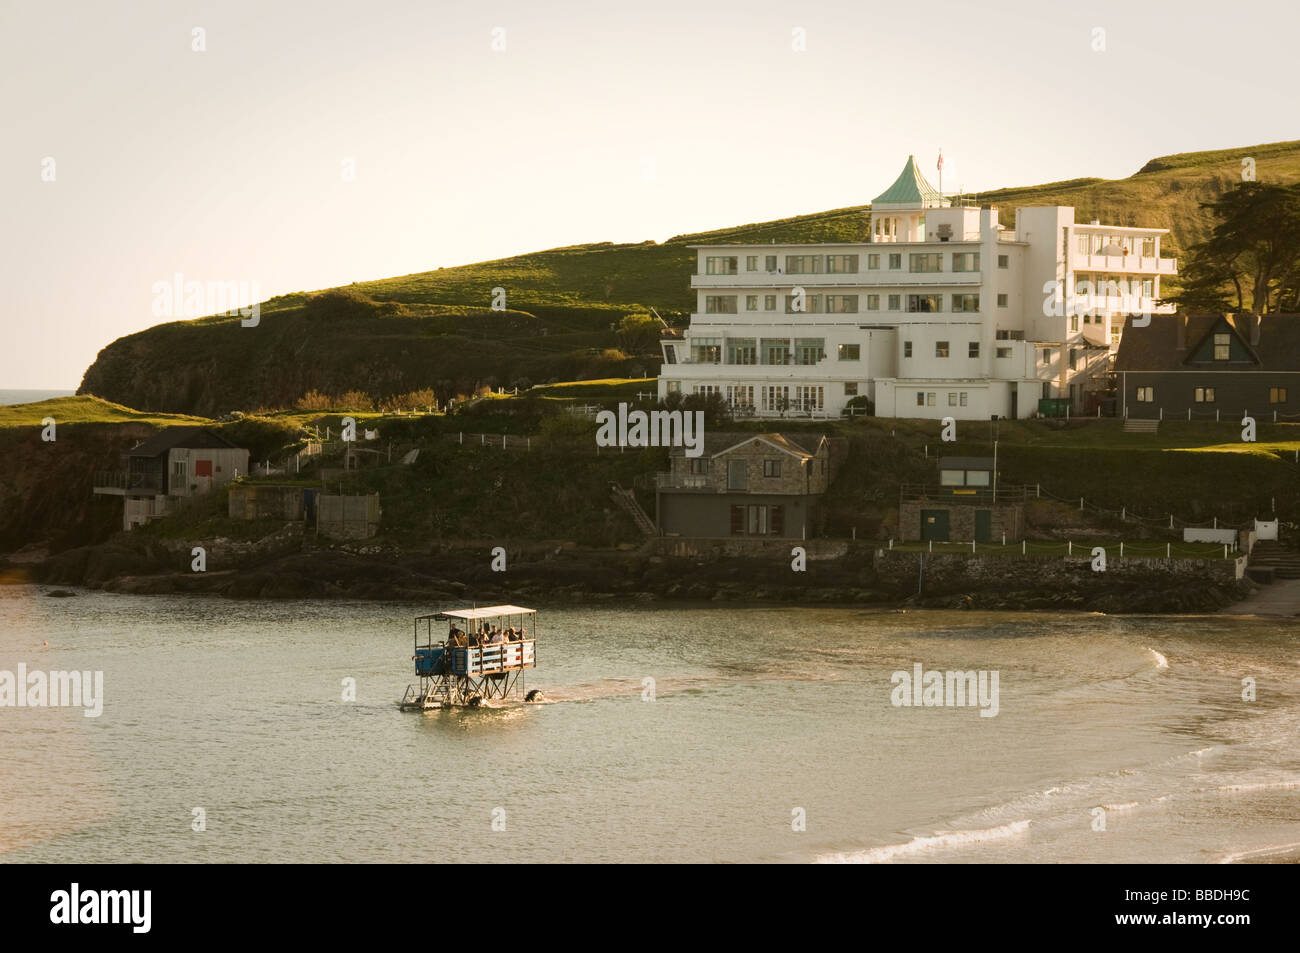 The Sea Tractor at Burgh Island in South Devon - Stock Image